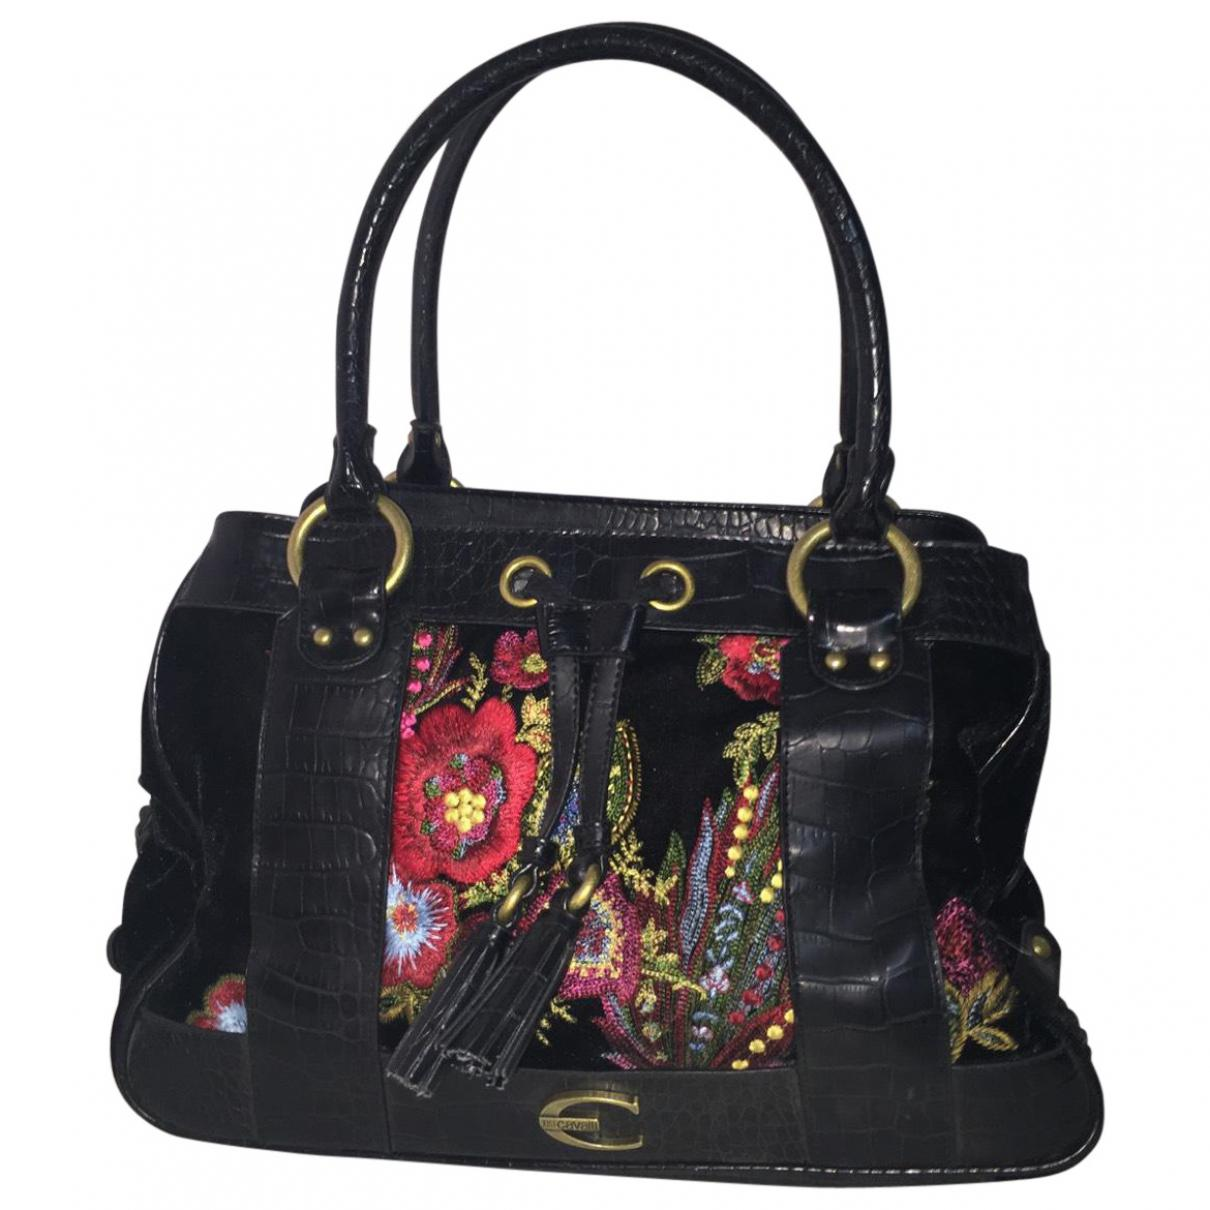 Pre-owned - Leather tote Just Cavalli b4QeW9S5Y